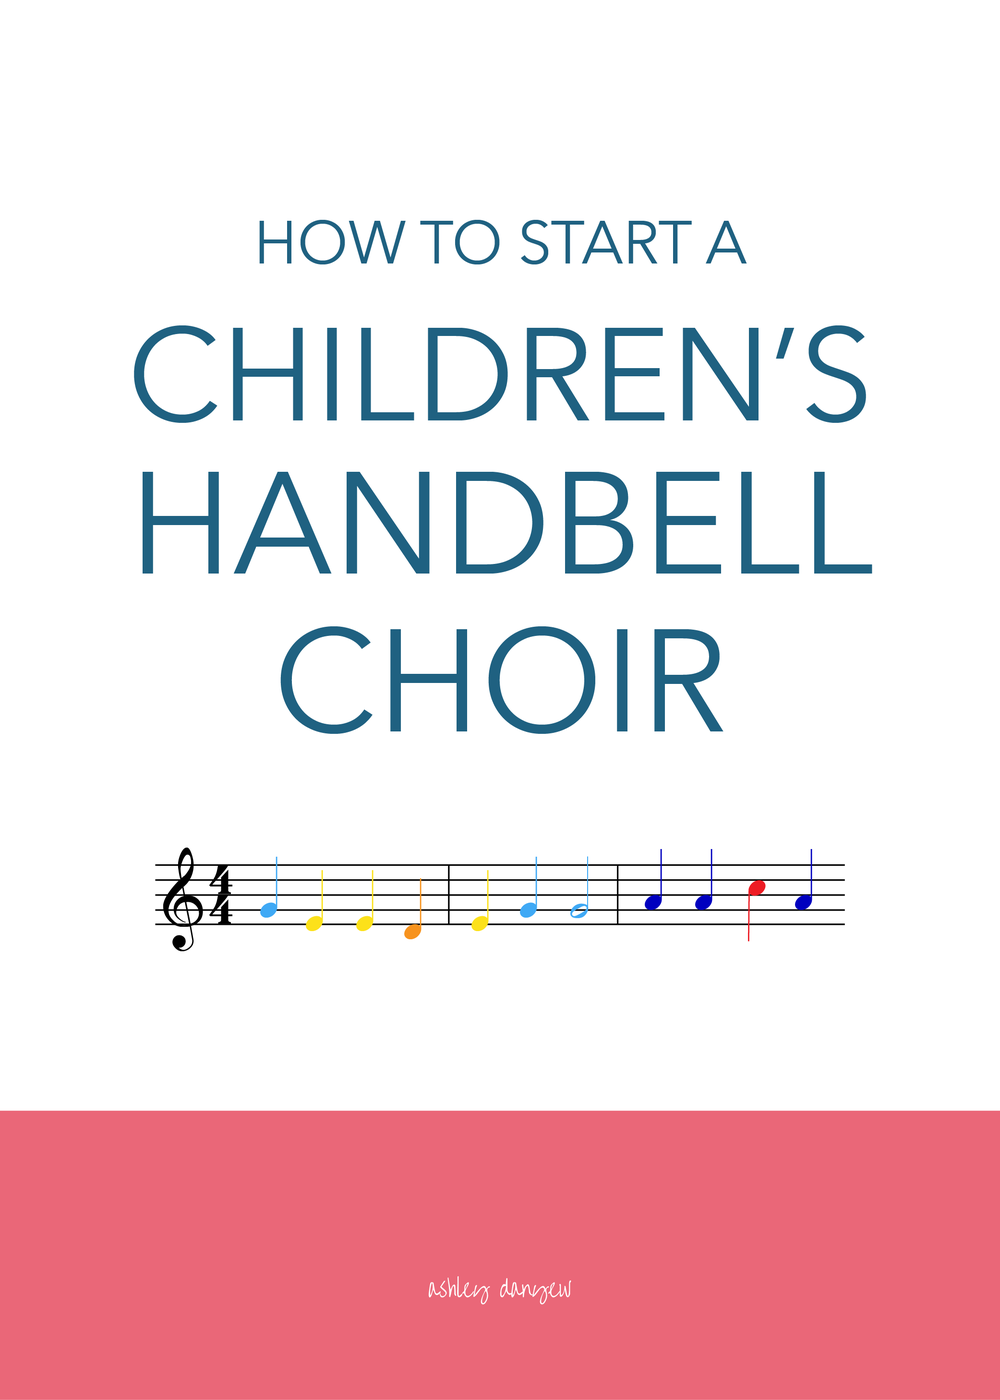 How-to-Start-a-Childrens-Handbell-Choir-01.png